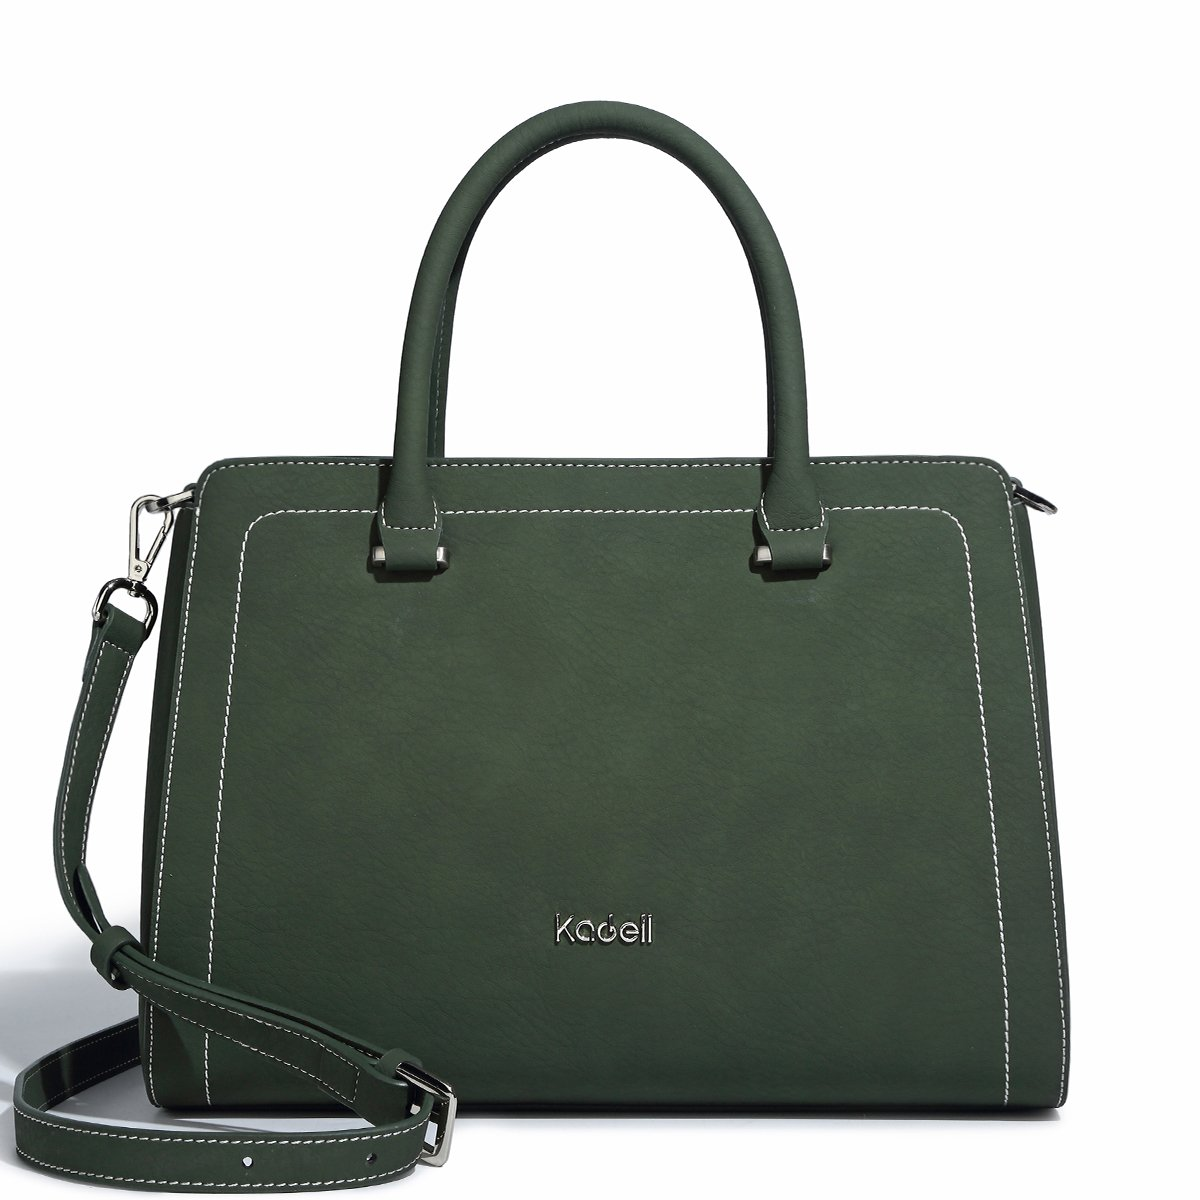 Kadell 2018 Women Leather Handbags For Women's Shoulder Top Handle Tote Bags Army Green-1